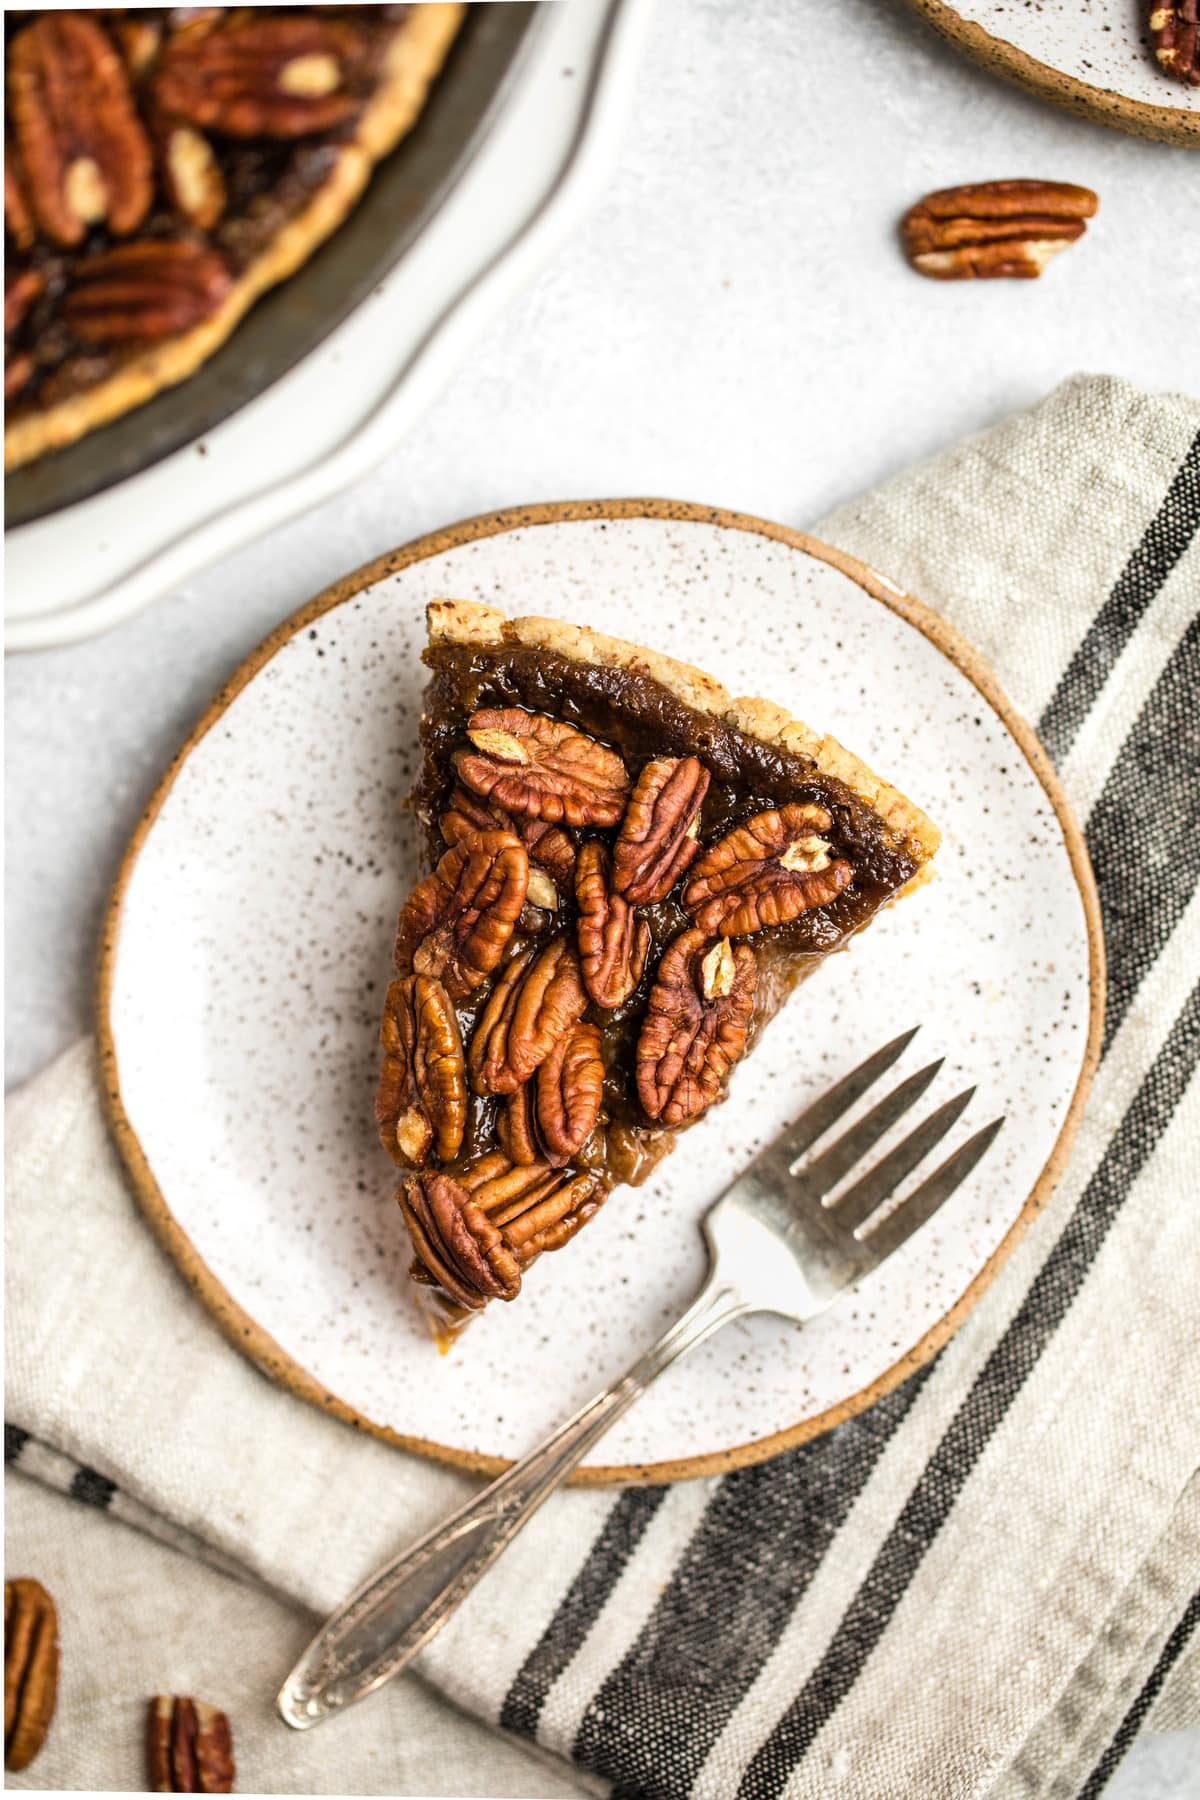 slice of pecan pie on white speckled plate on grey tea towel and marble bacground